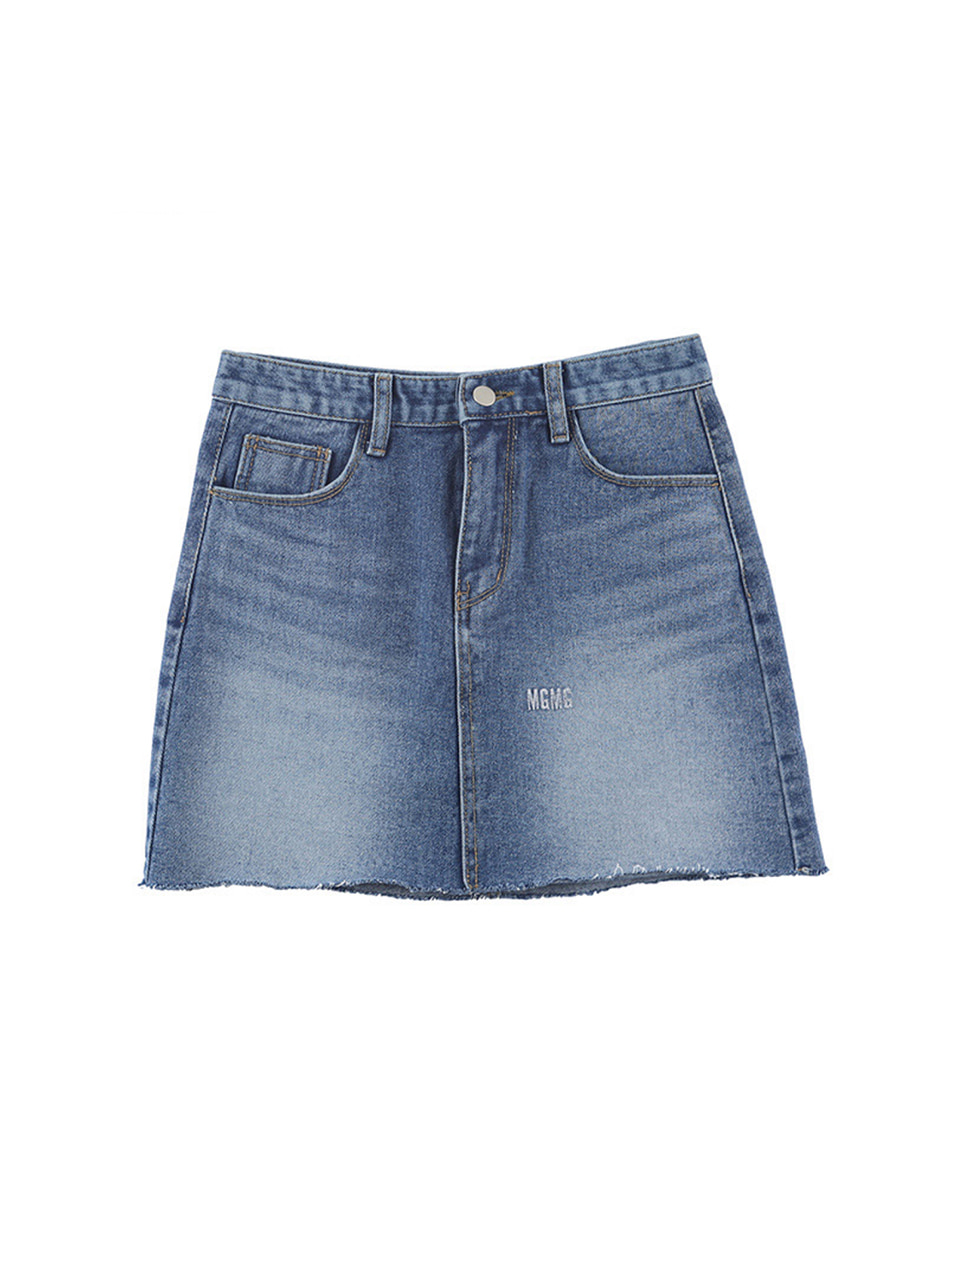 mgmg logo denim skirt